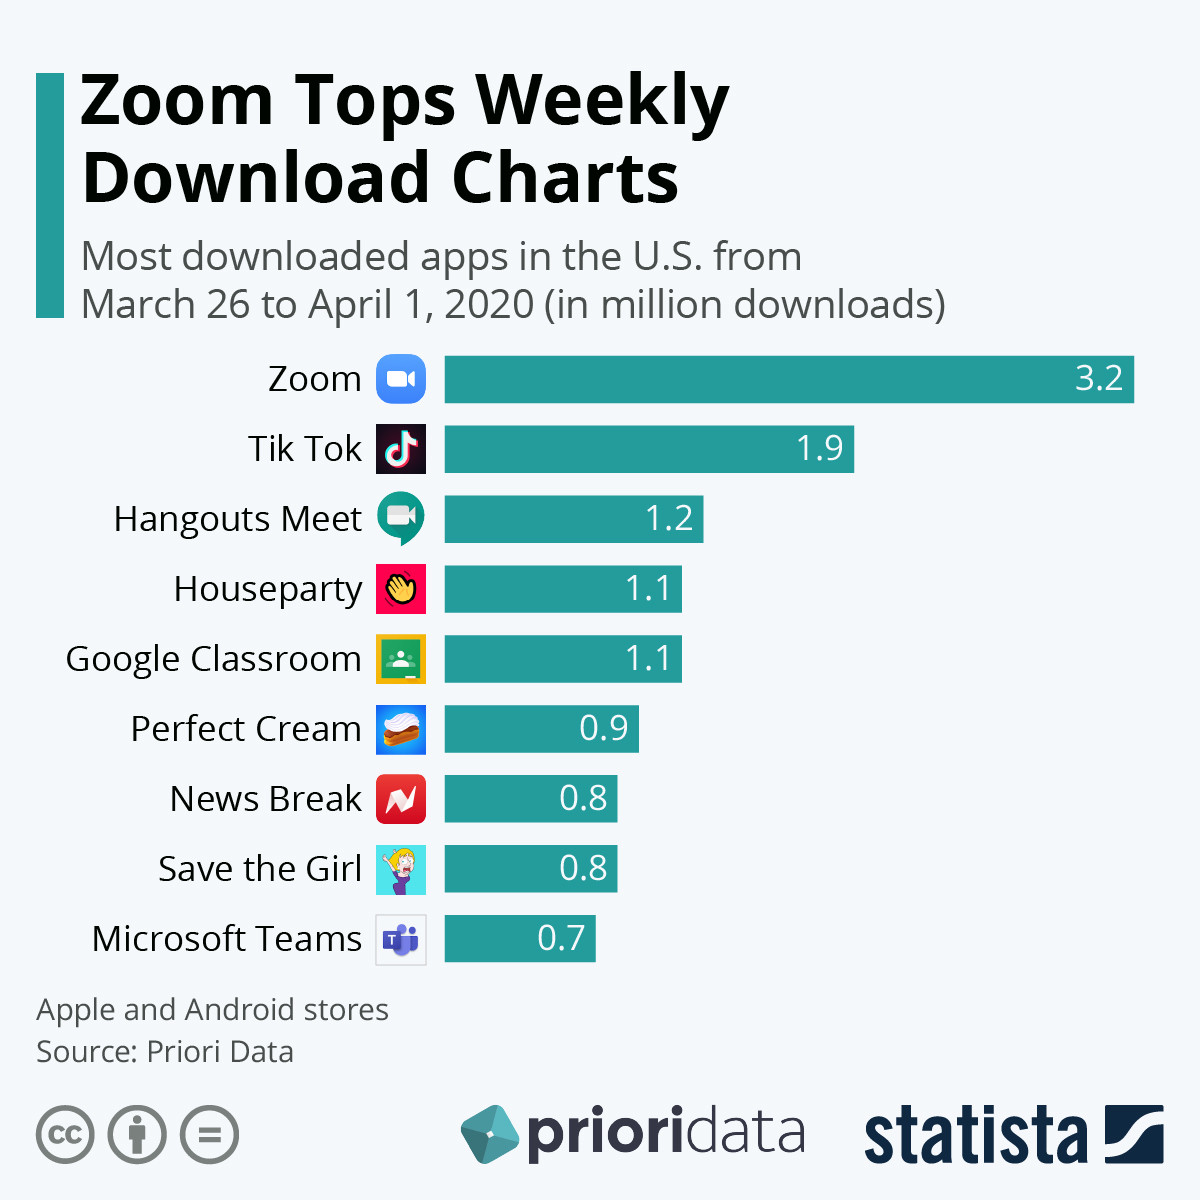 Zoom tops weekly download charts.